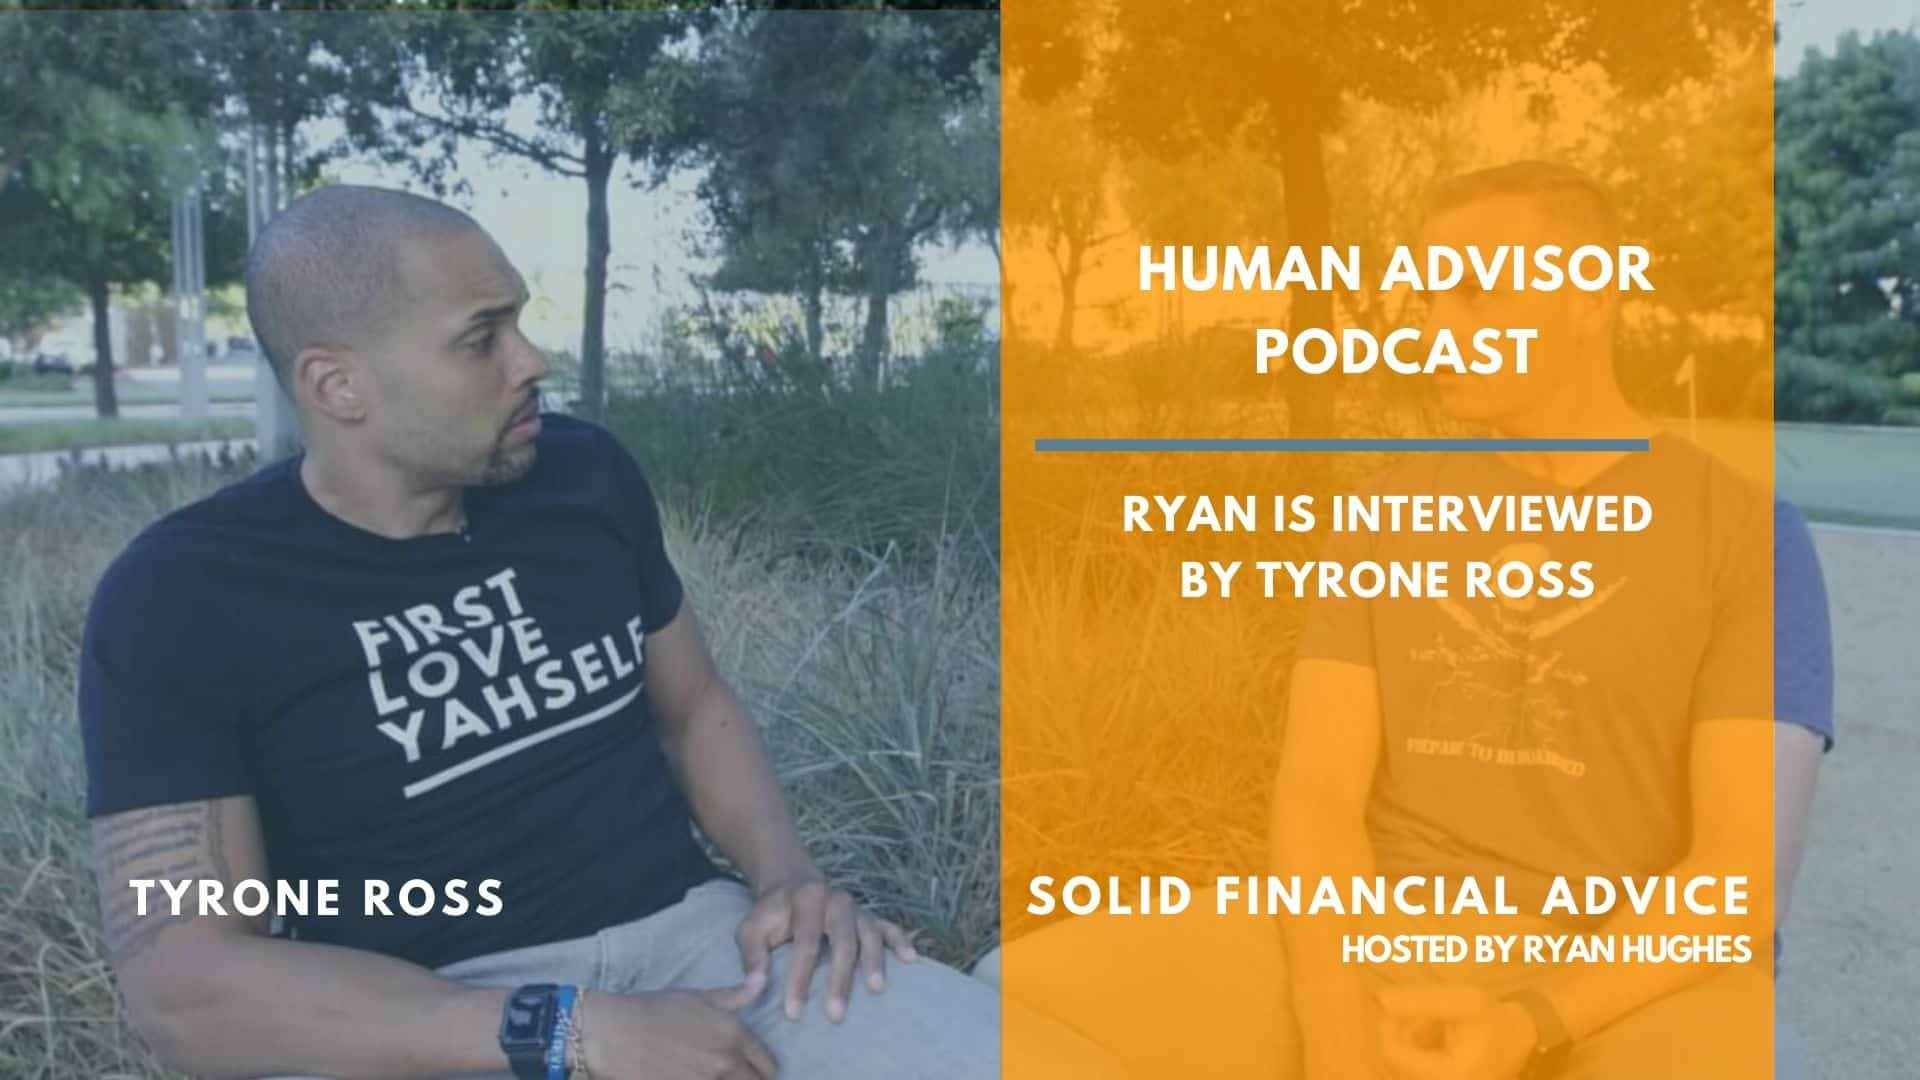 Human Advisor Podcast With Tyrone Ross